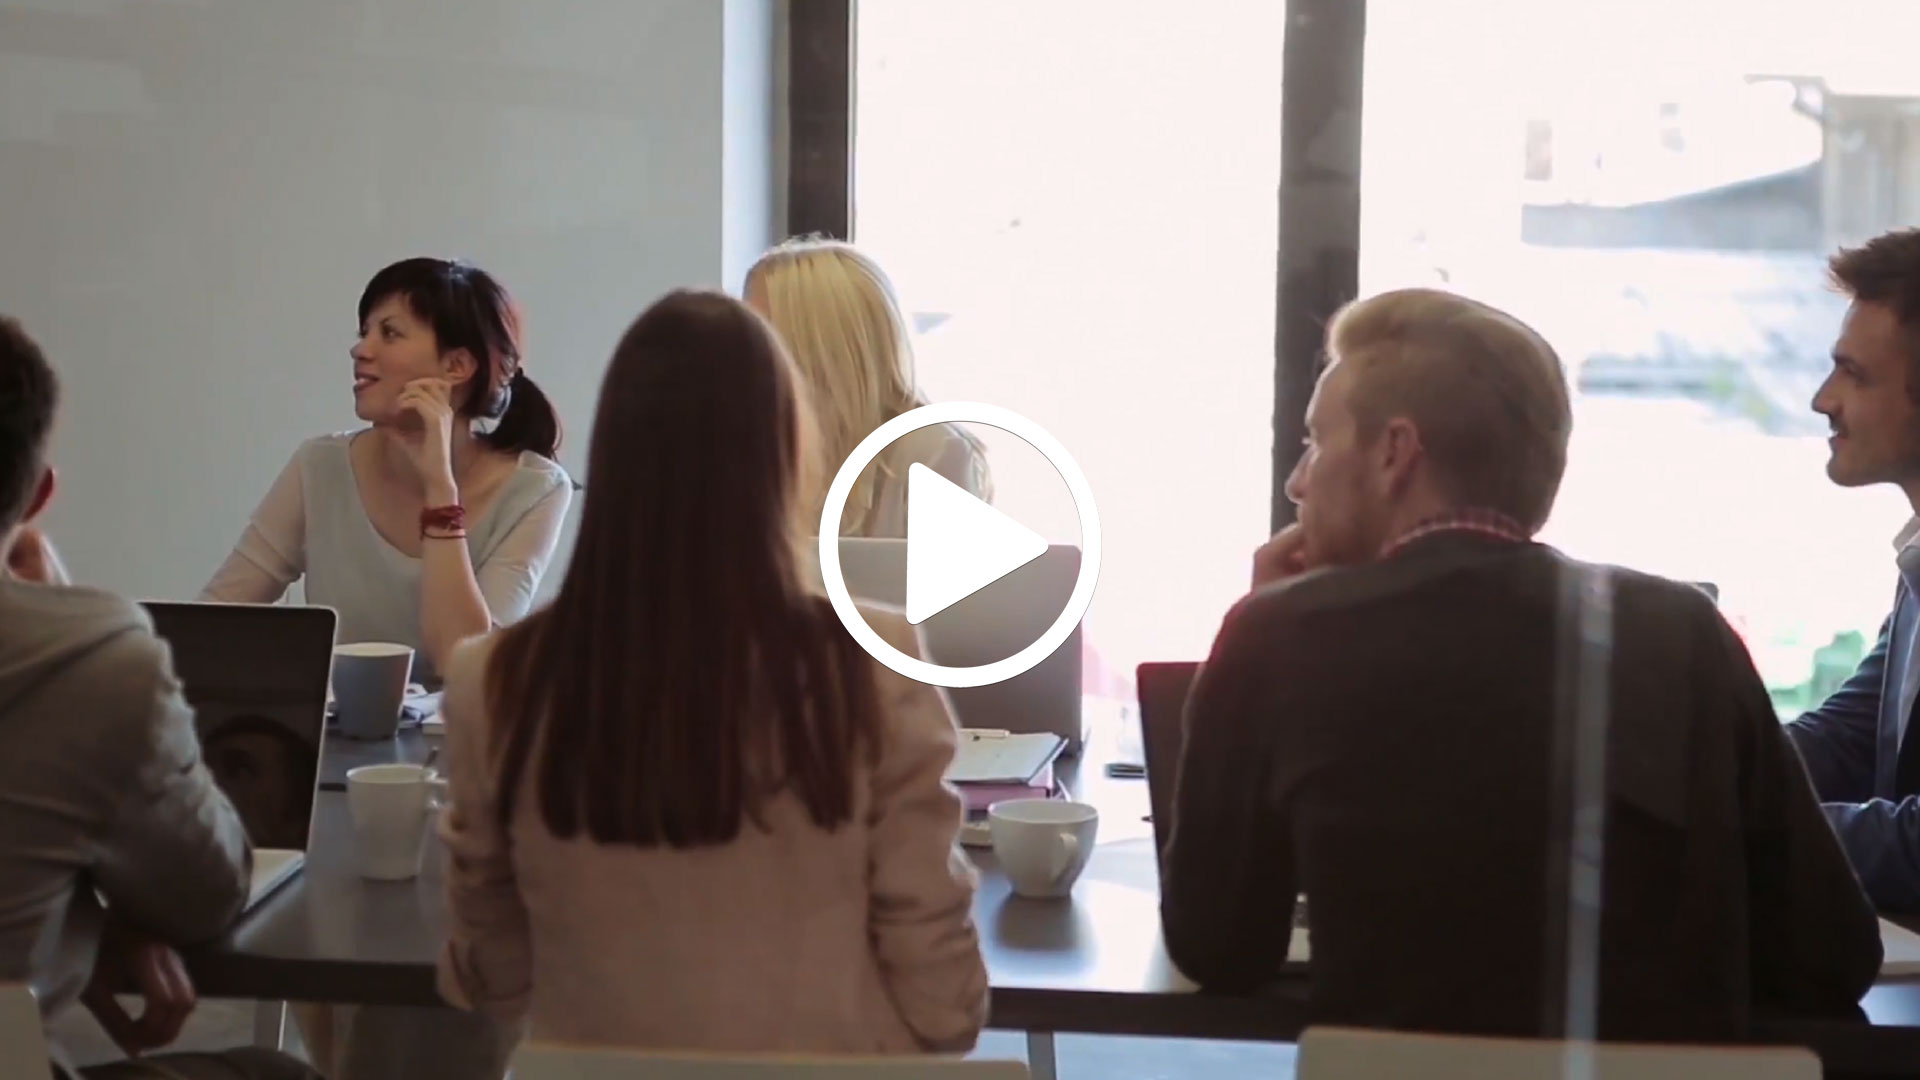 Watch our careers video for available job opening Enterprise Services Specialist in New York, NY